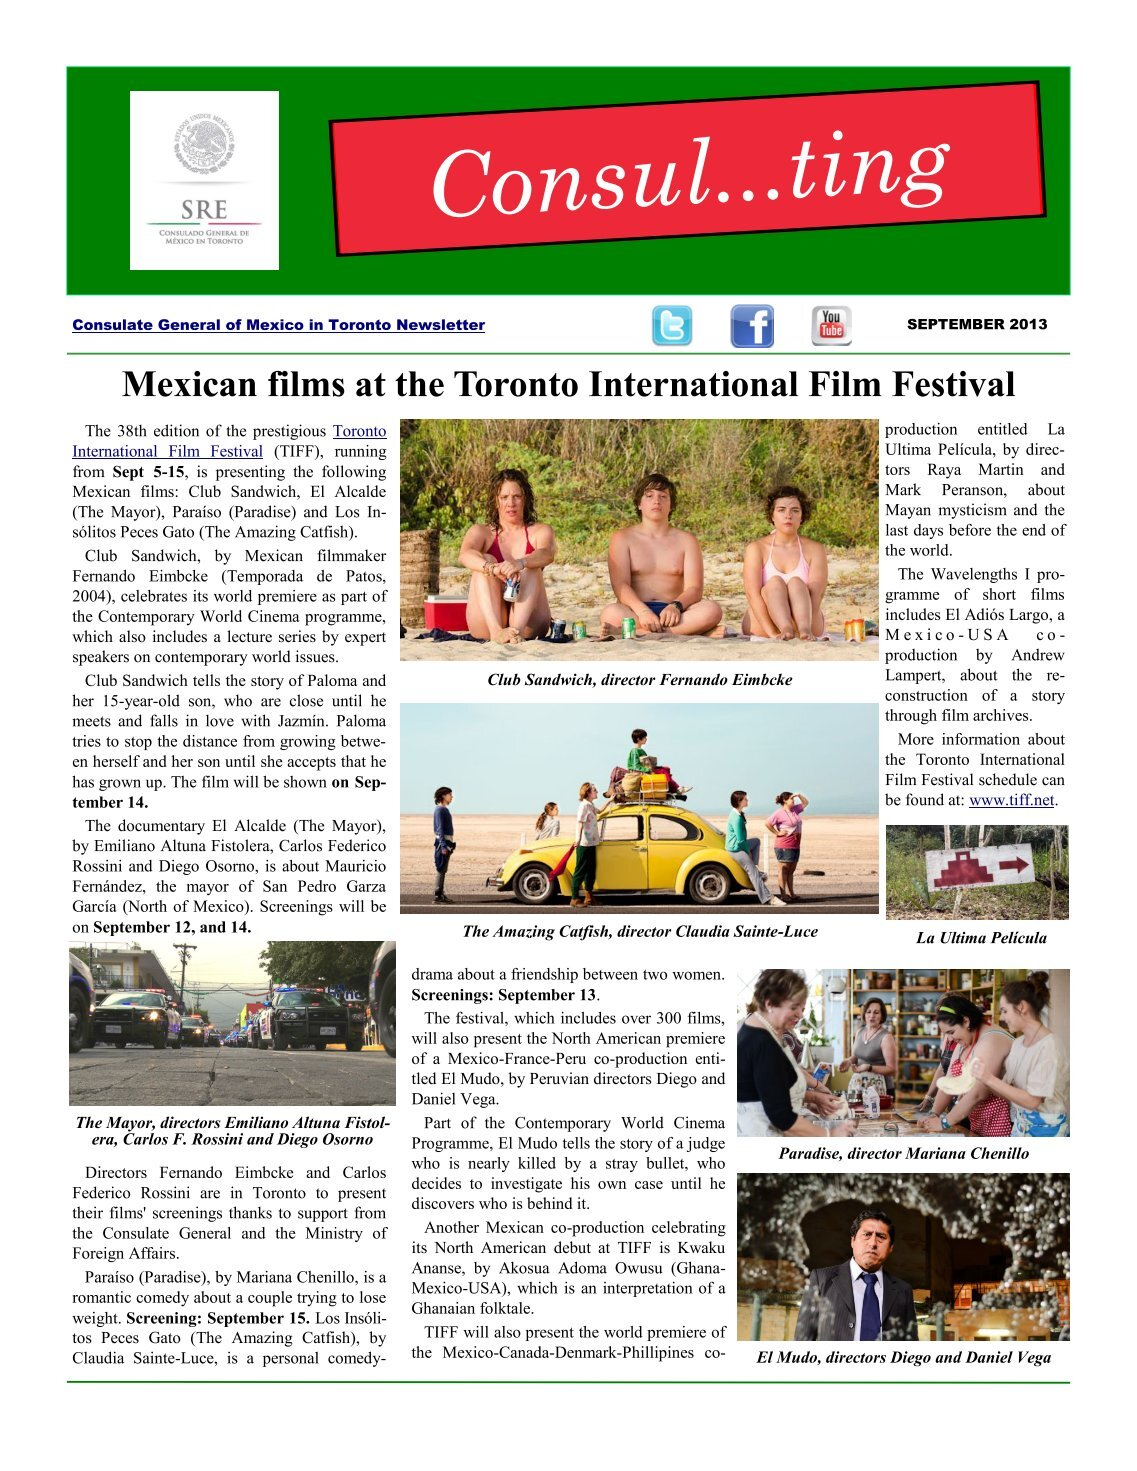 210 free Magazines from CONSULMEX SRE GOB MX